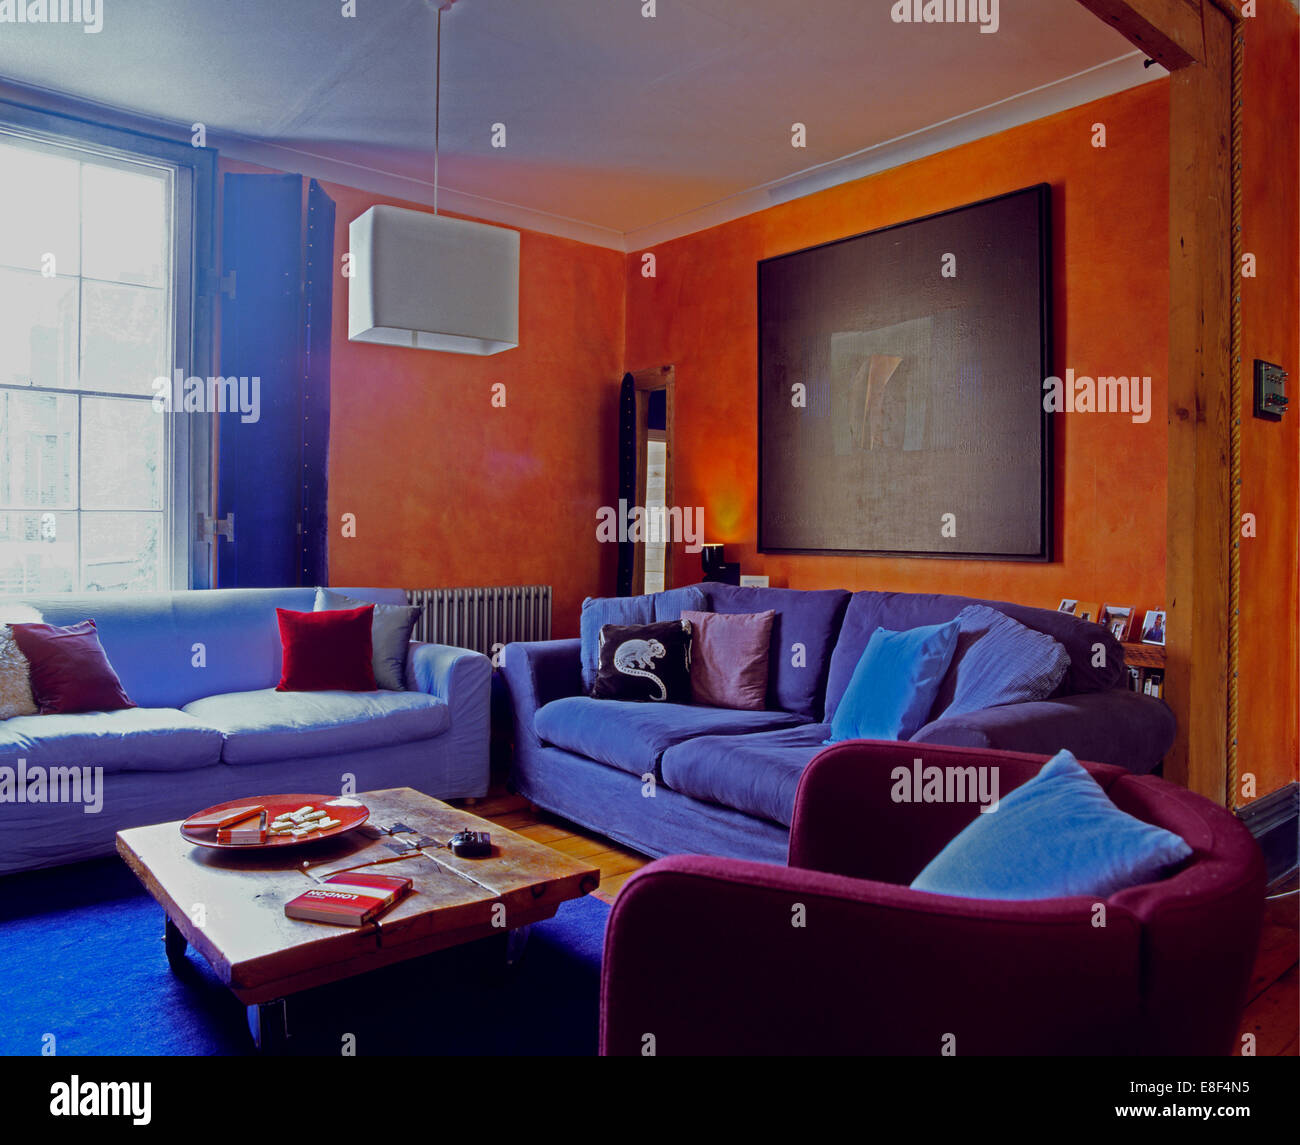 Blue Velvet Sofas And Purple Armchair In Nineties Orange Living Room With  Sponging Effect Walls And Large Painting Part 84